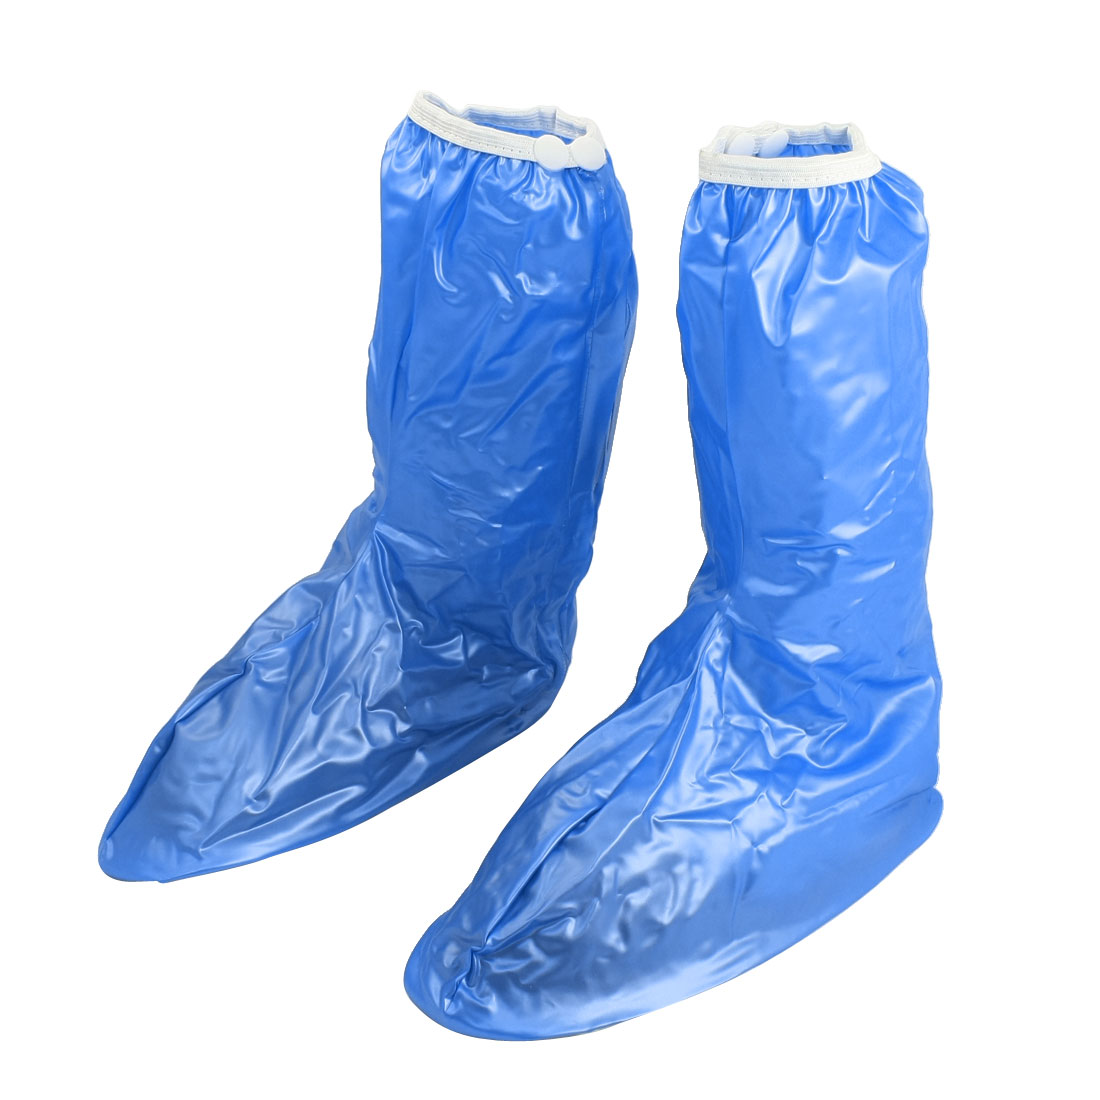 Women Outdoor Blue Water Resistant Rain Boots Shoe Cover US 8.5 Pair